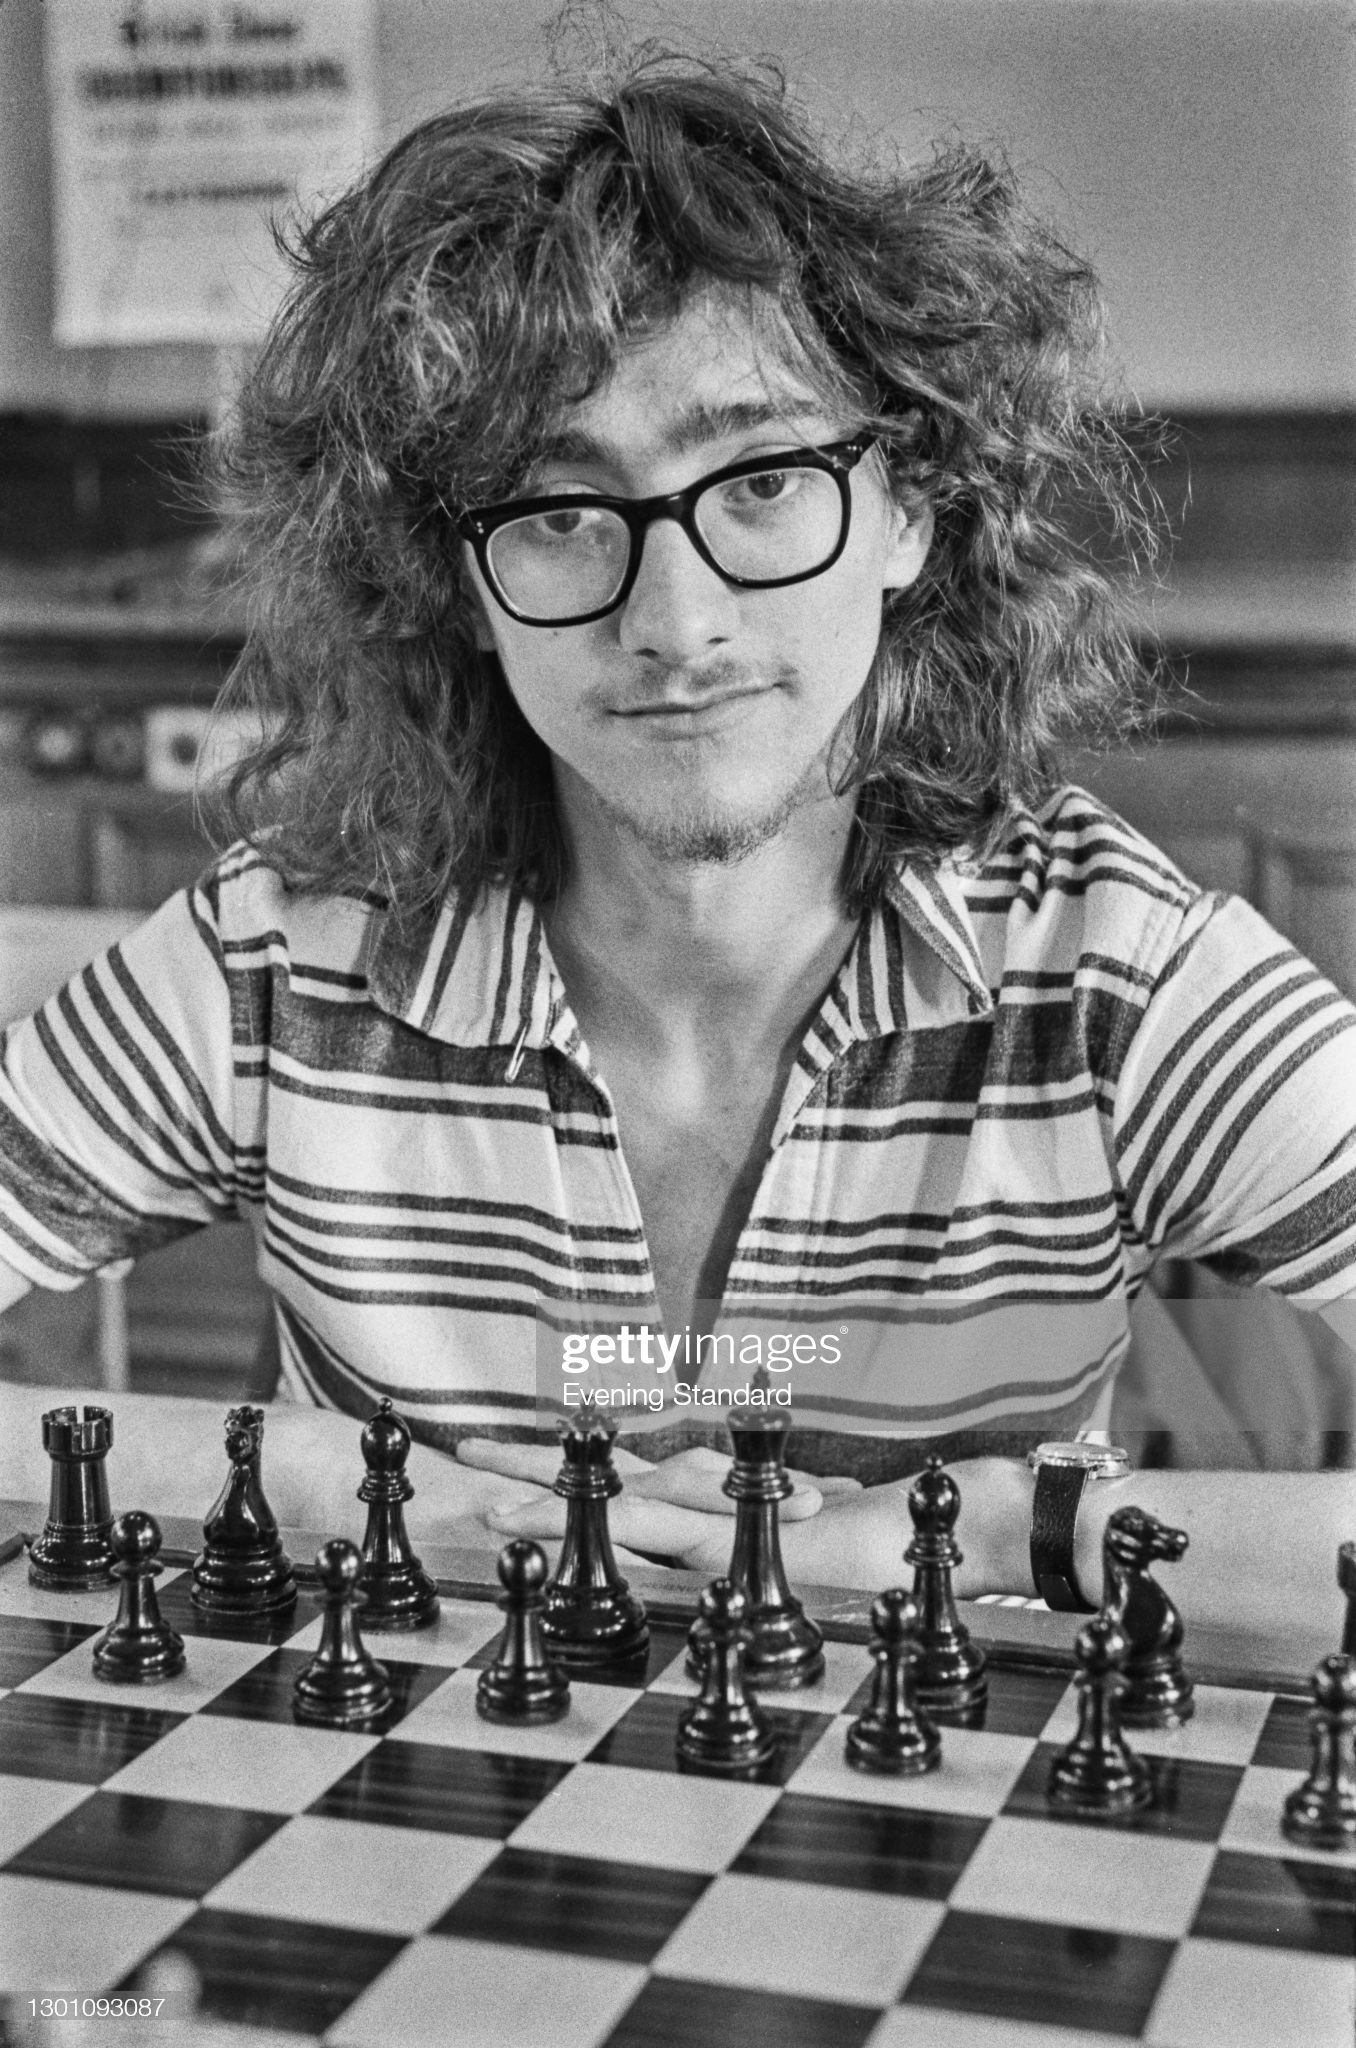 English chess player and mathematician Jonathan Mestel during the British Chess Championships at Eastbourne, East Sussex, UK, 14th August 1973. (Photo by Evening Standard/Hulton Archive/Getty Images)